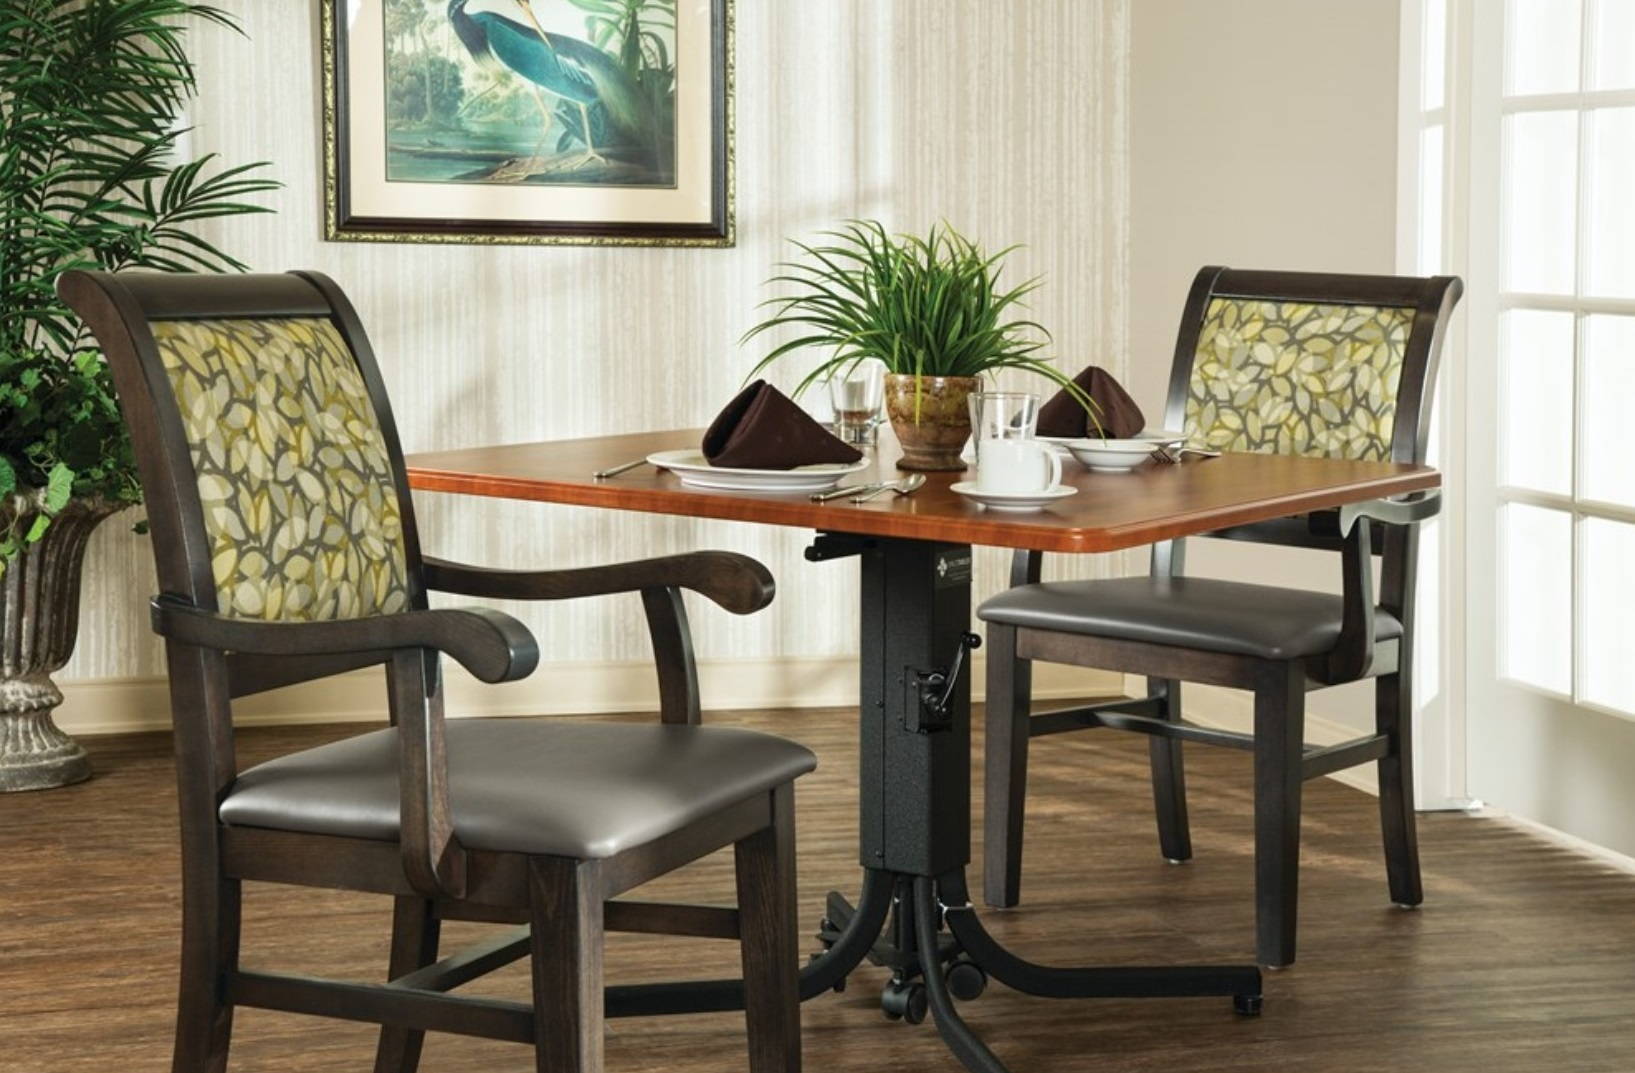 Sp Dining Table Room Scene 2